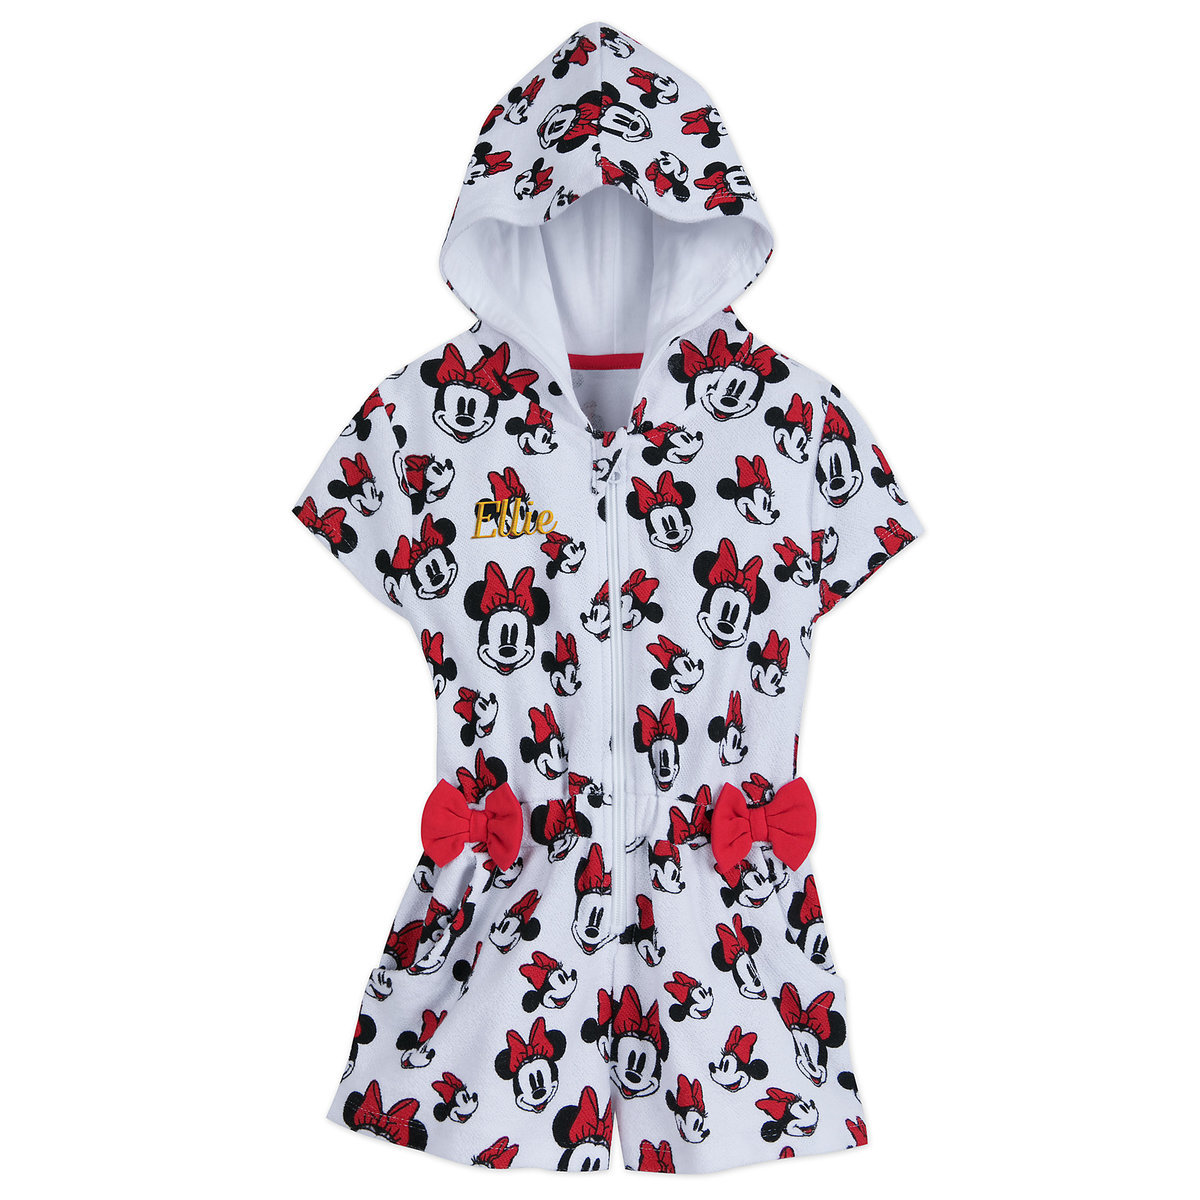 30cd18f37e Product Image of Minnie Mouse Swim Cover-Up for Girls - Personalizable # 1